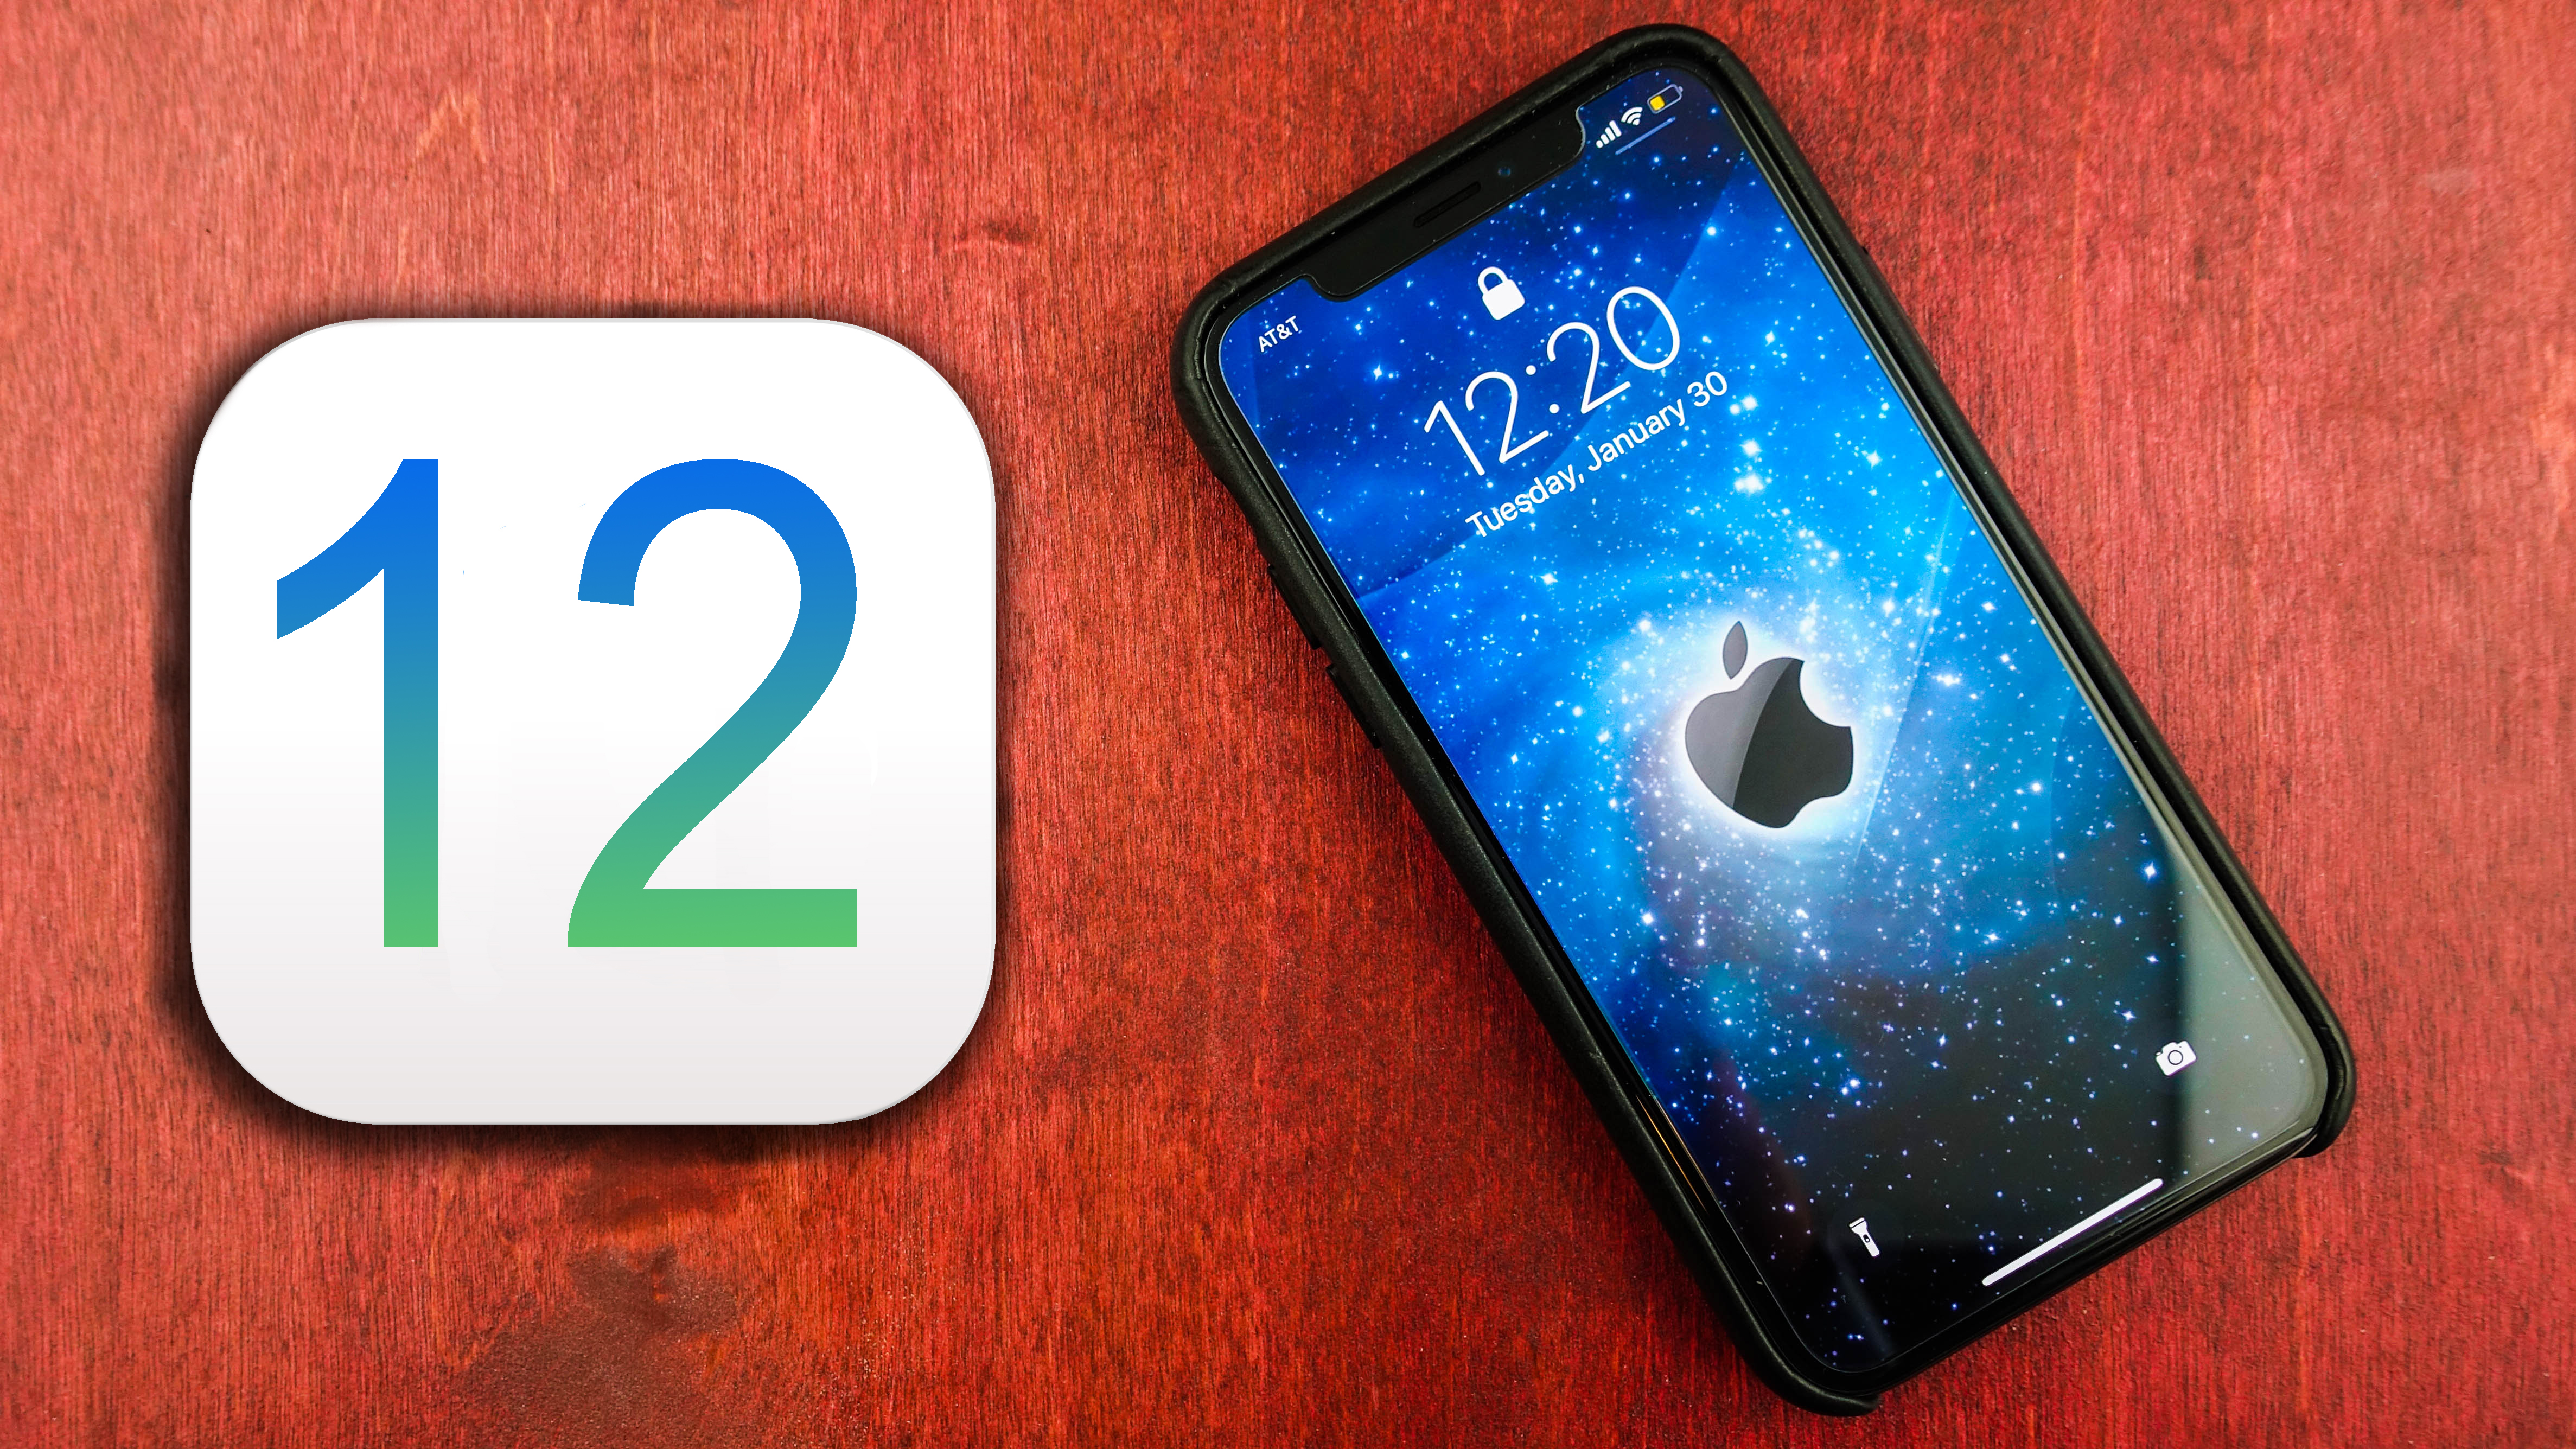 iOS 12: new features and the iOS 12.1 release date